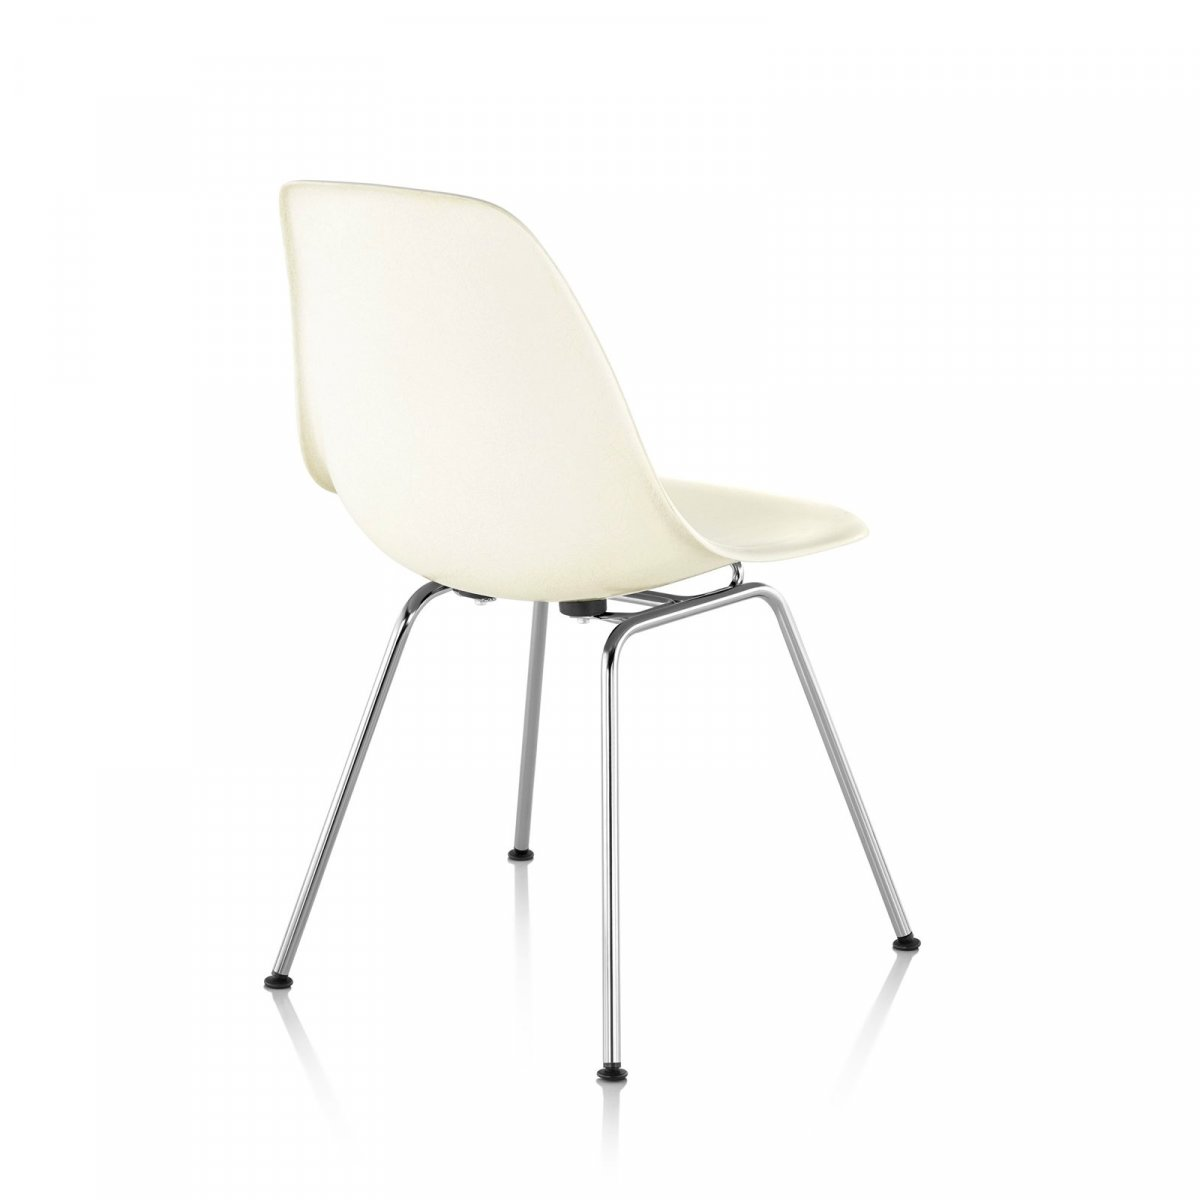 Eames Molded Plastic Side Chair 4-Leg Base, white, back view.